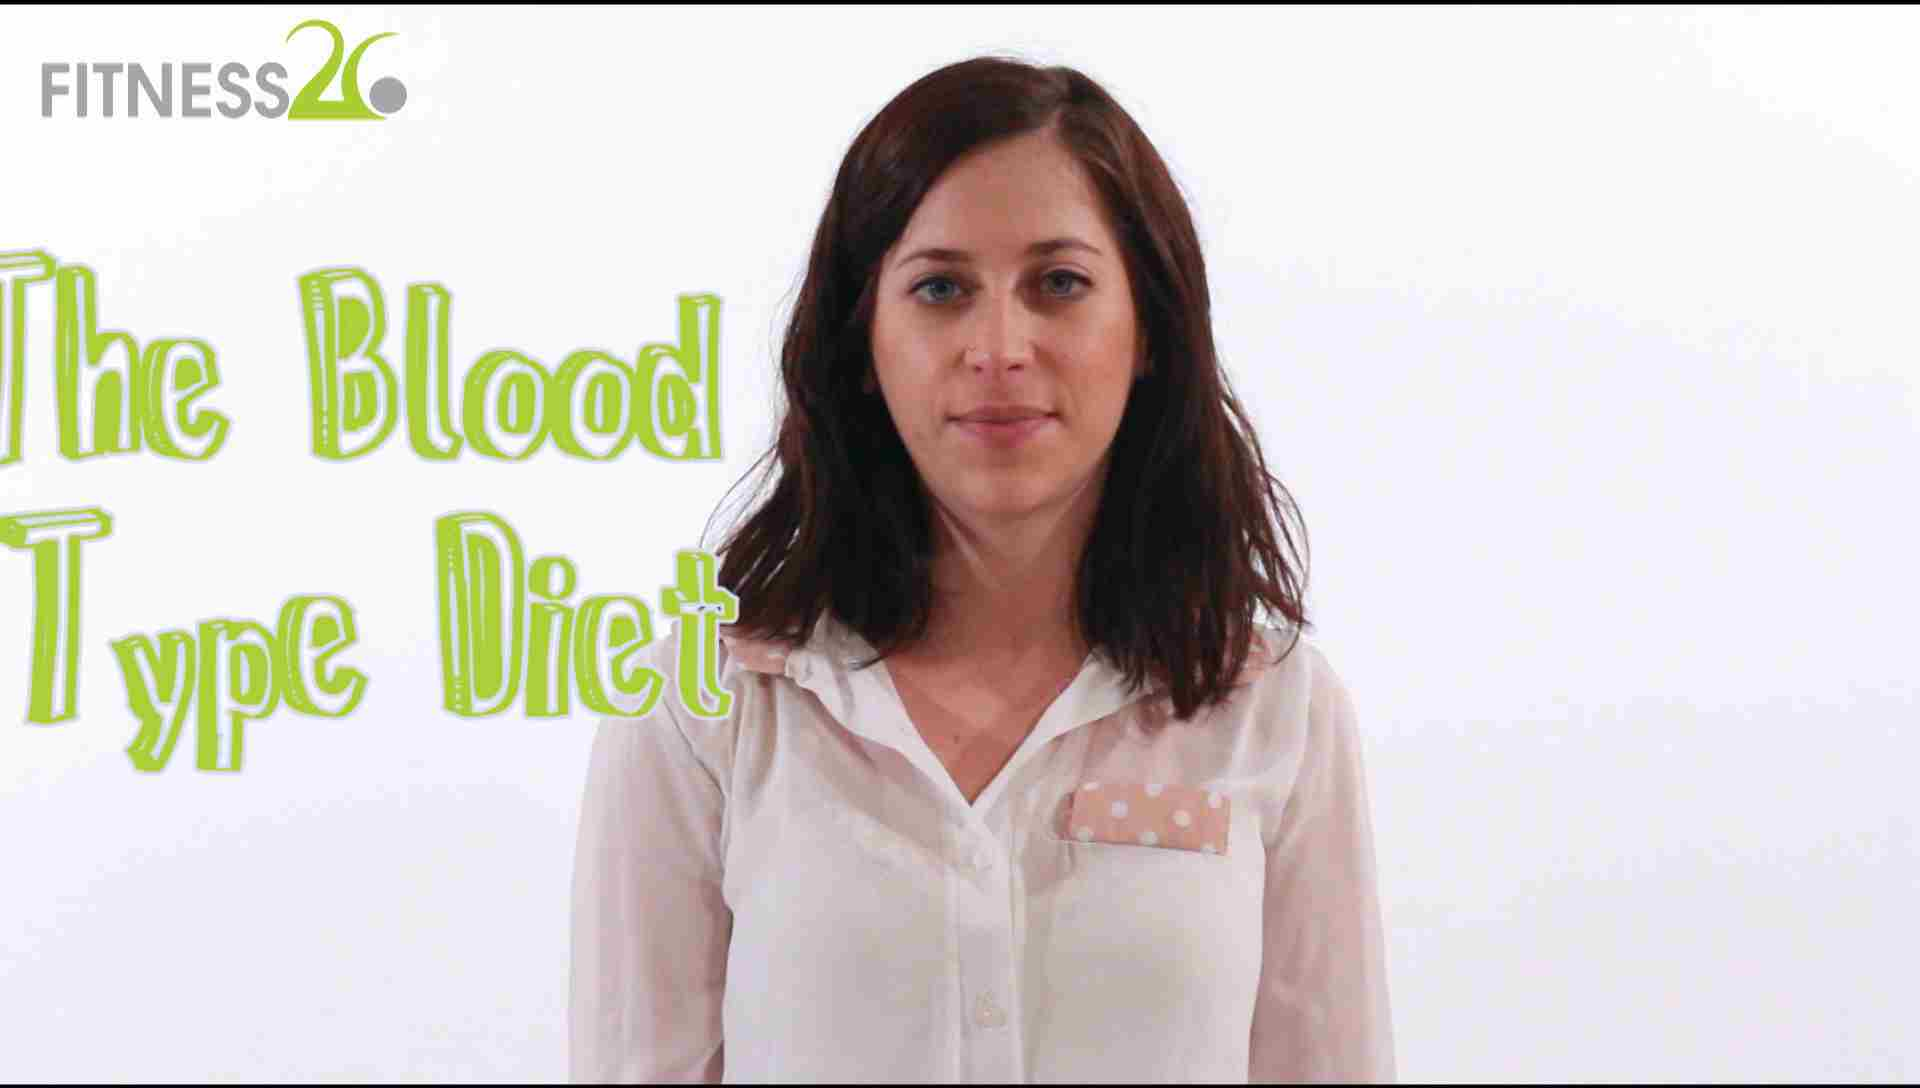 The Blood type Diet – Gabriella